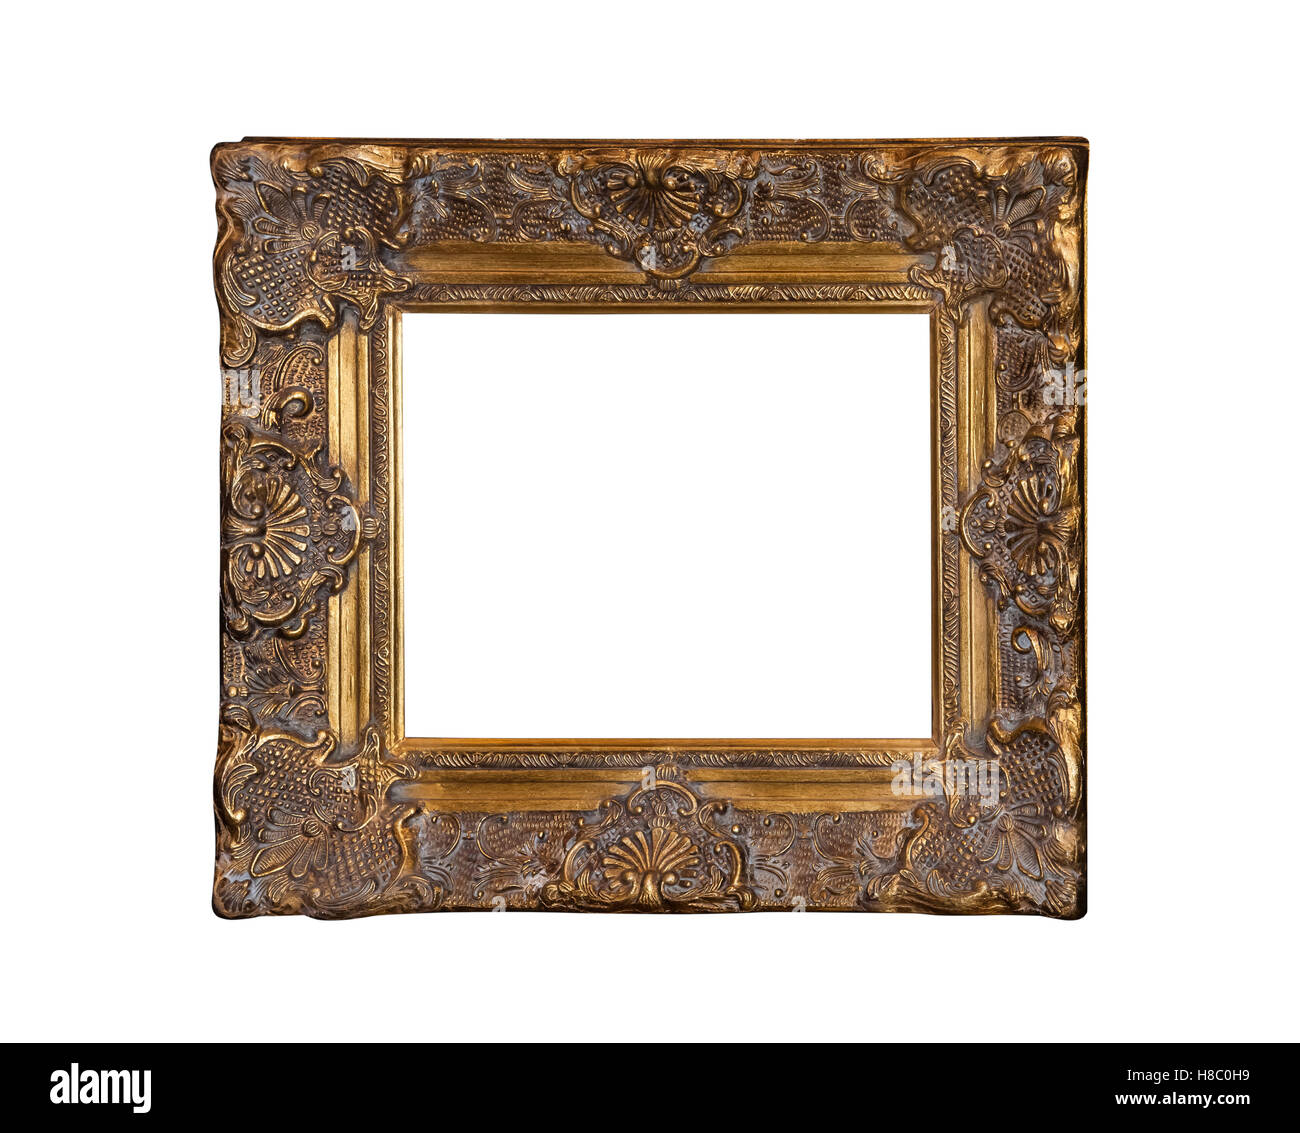 Classic painting canvas frame isolated Stock Photo: 125653733 - Alamy